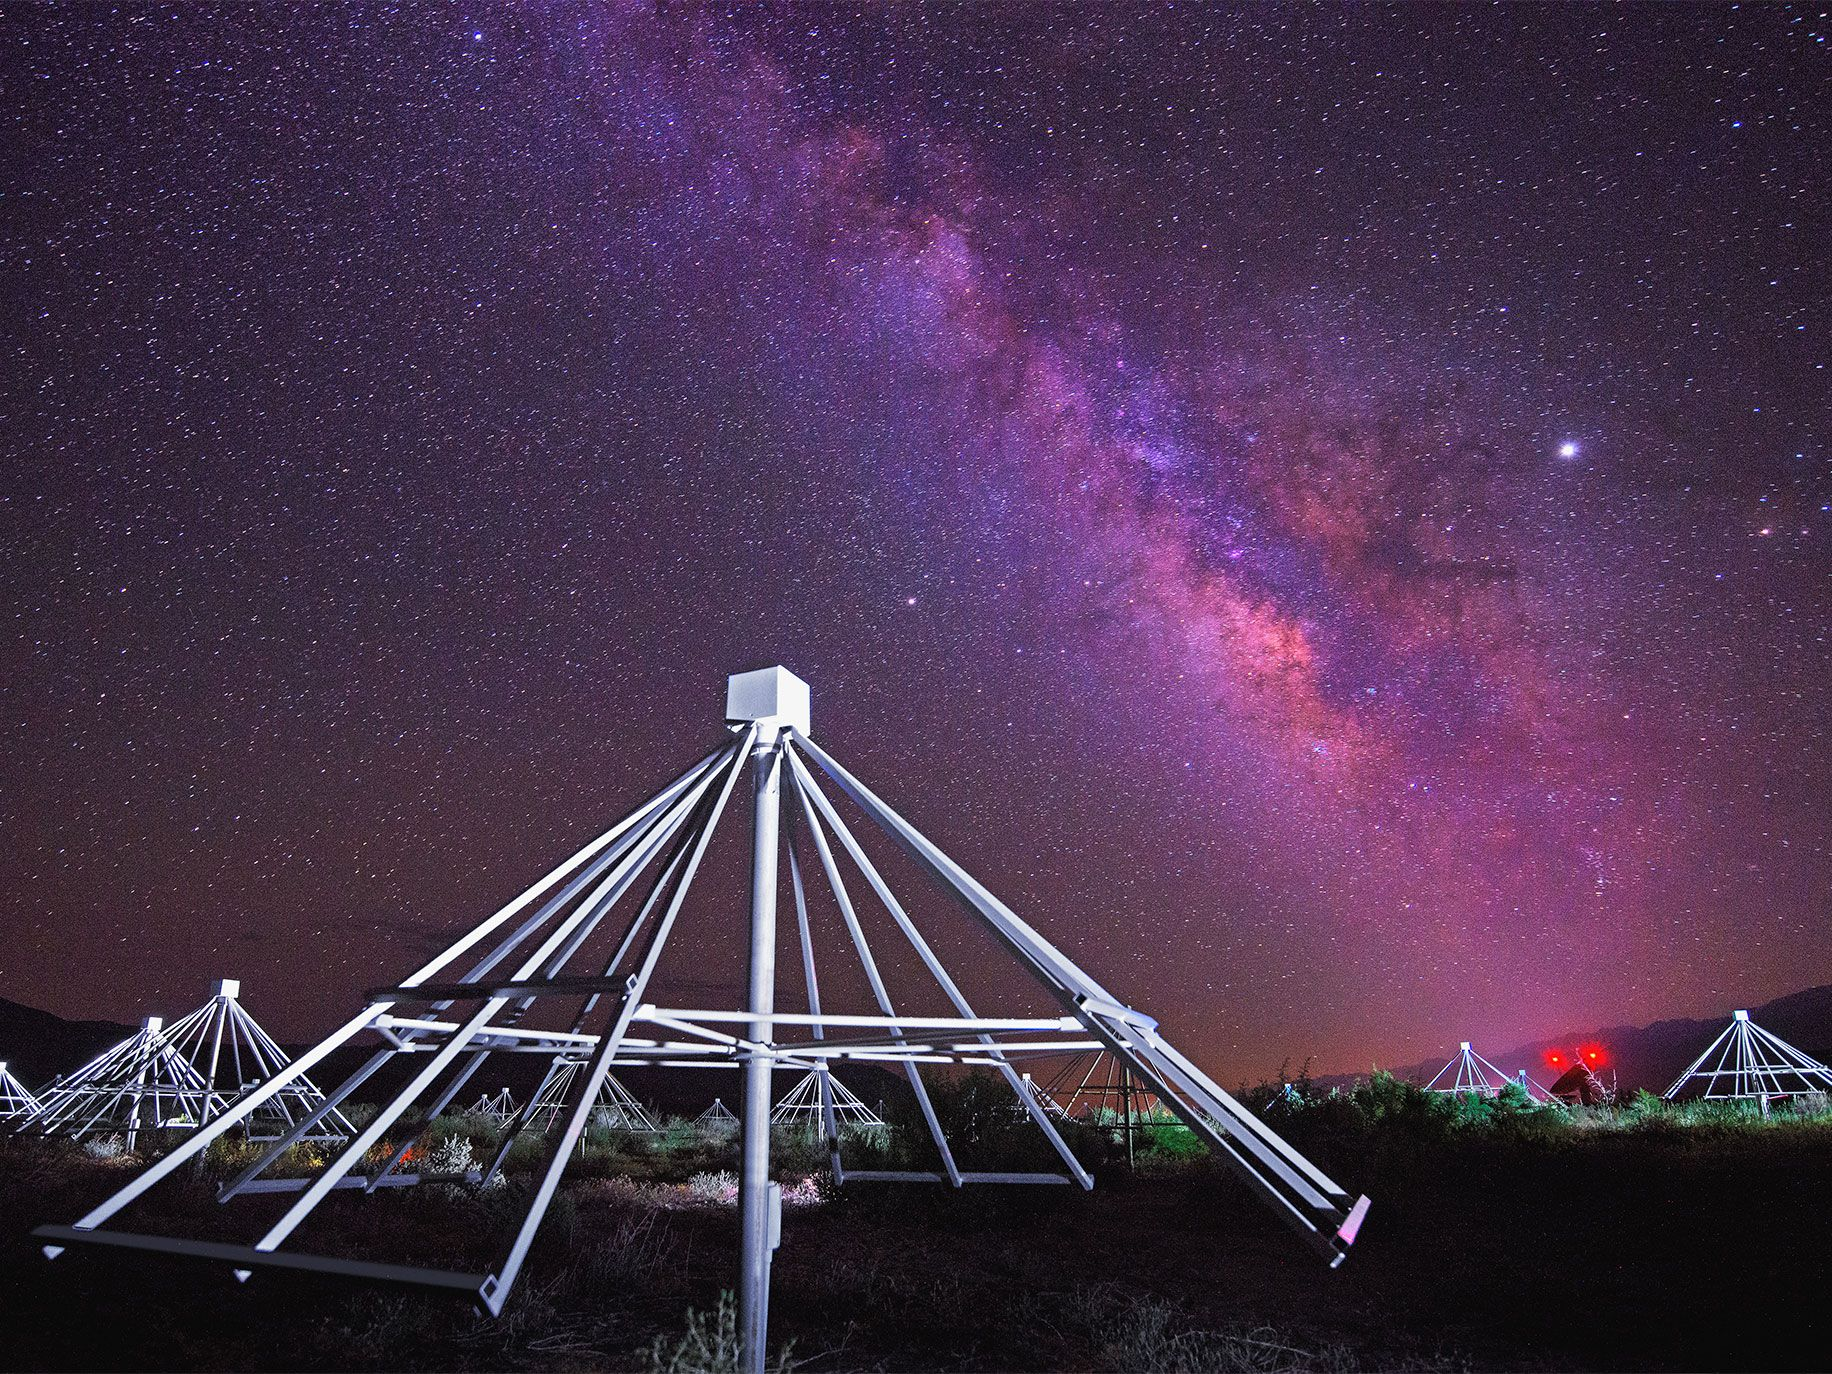 Hundreds of inexpensively made antennae tuned into the cosmos look for radio waves from potentially habitable planets at Caltech's Owens Valley Radio Observatory near Big Pine, California.